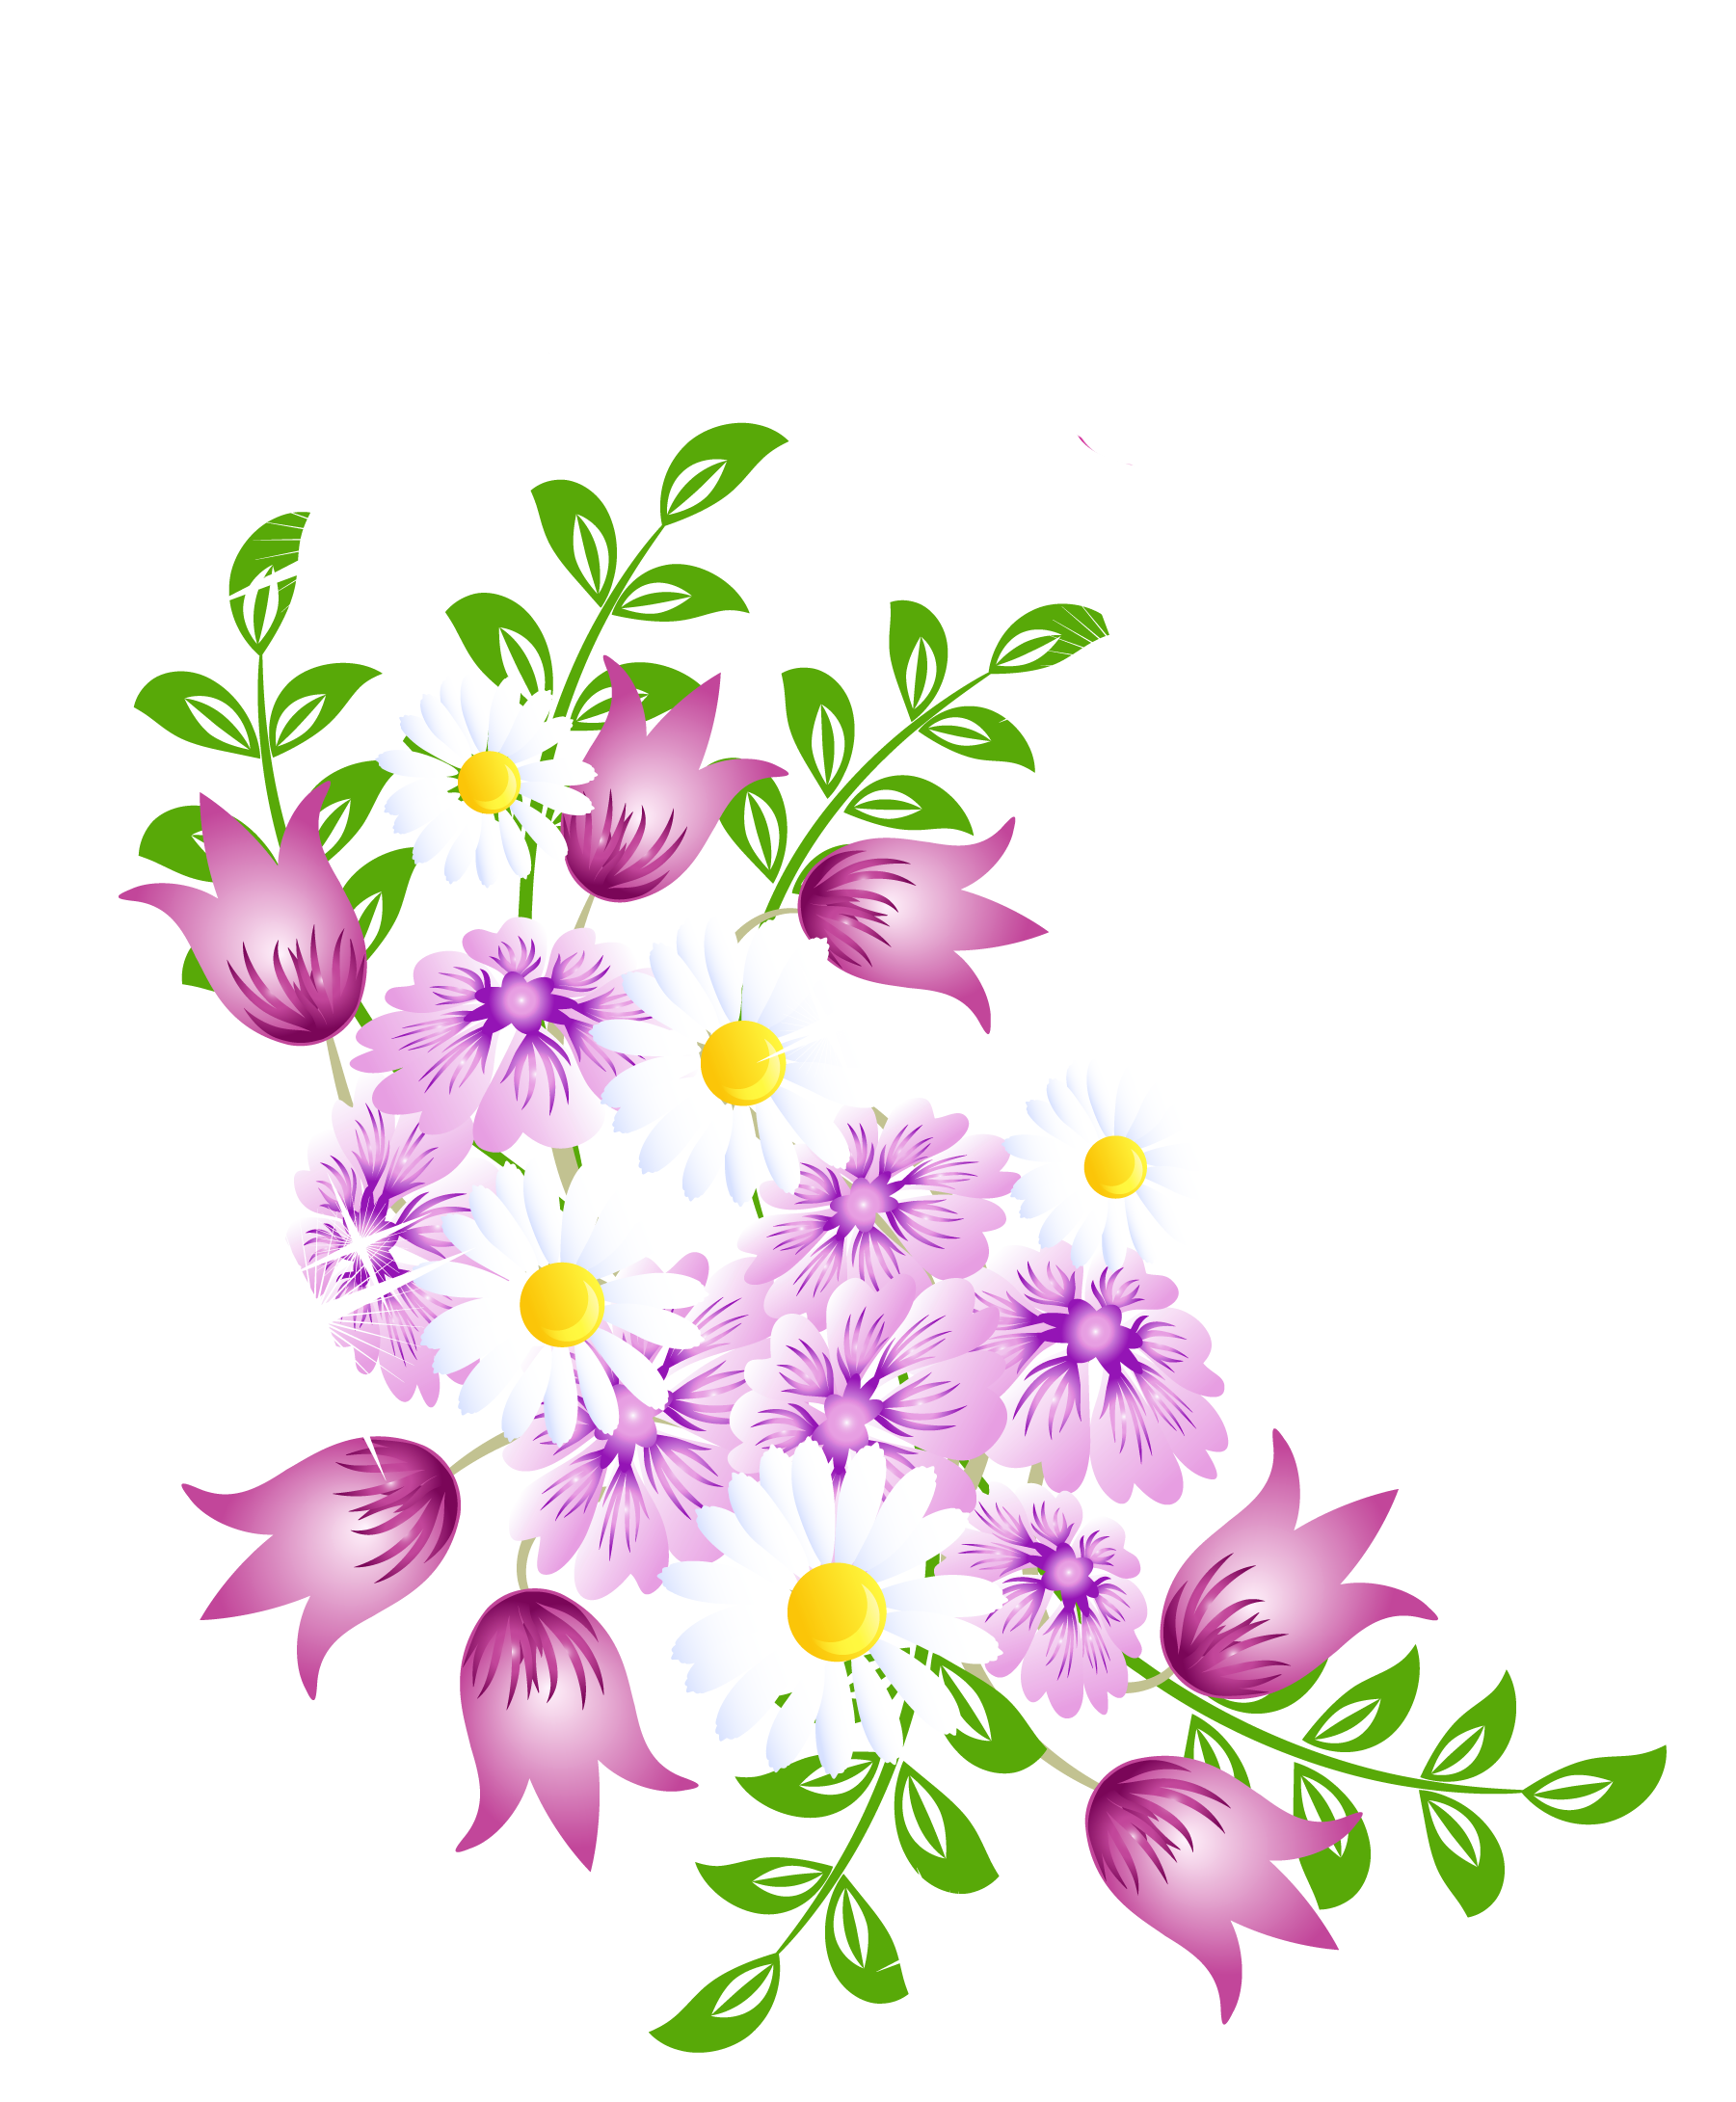 Spring flowers vector png. Decor picture clipart pinterest